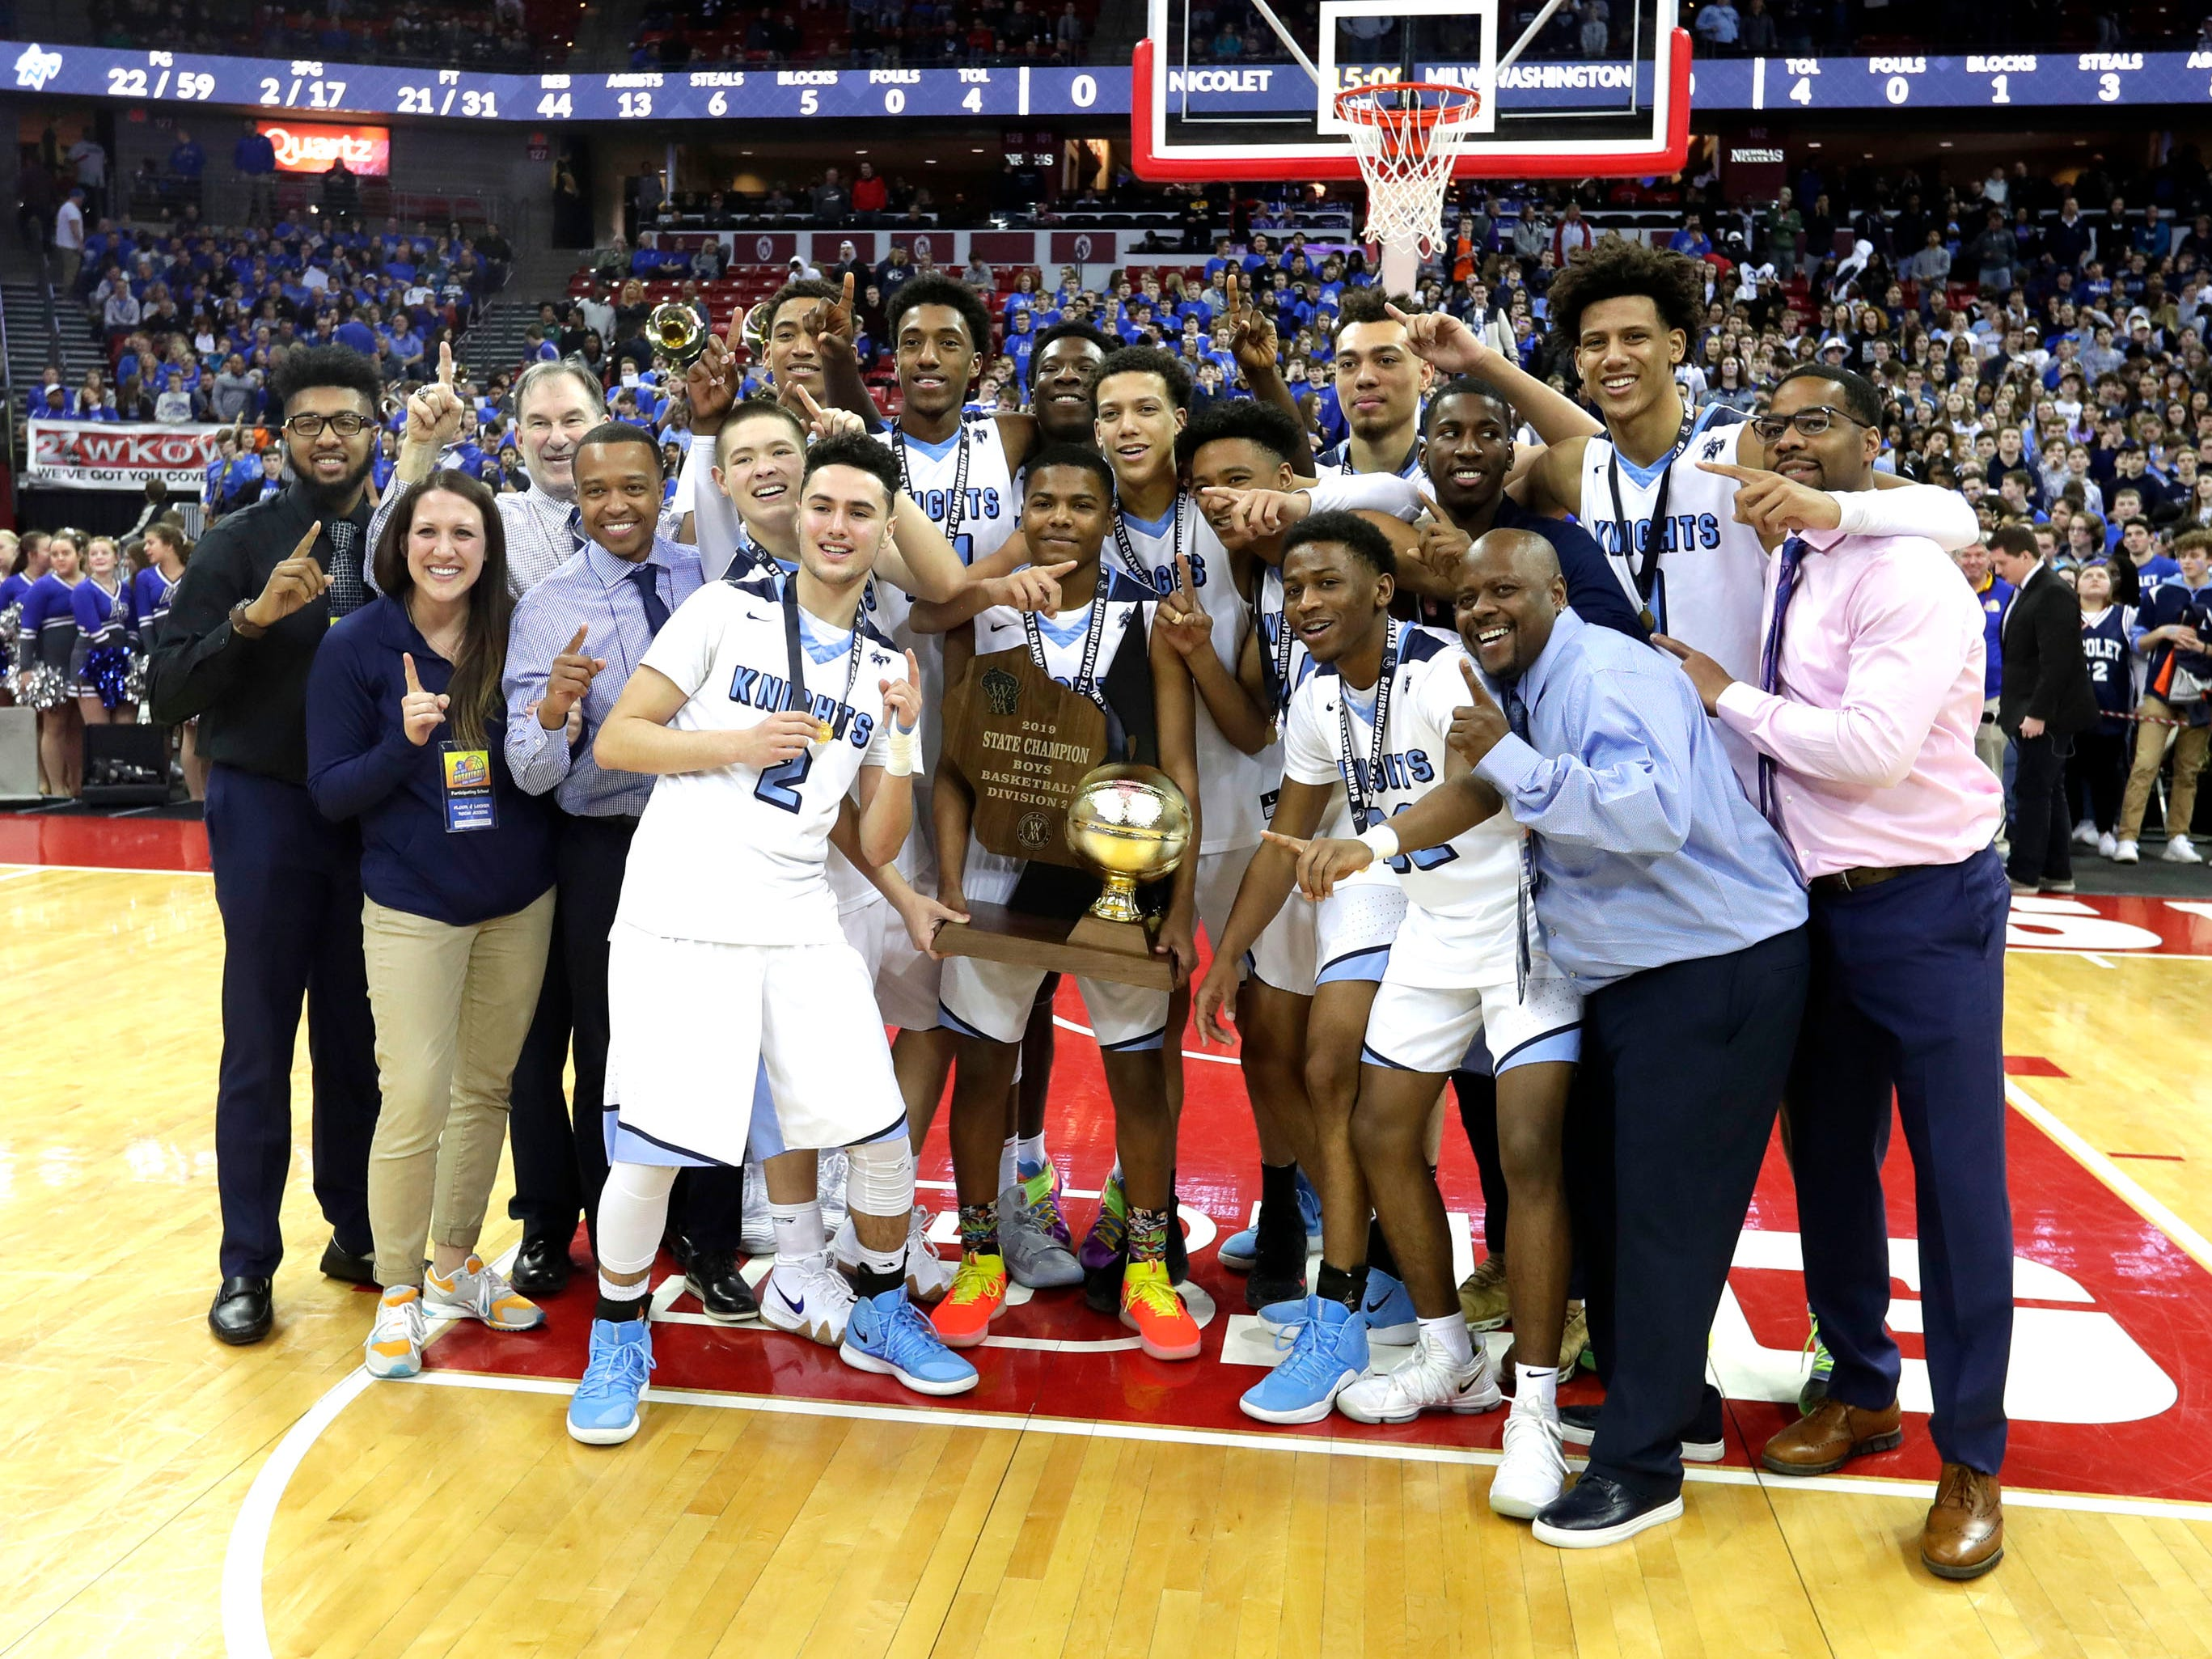 Nicolet players, coaches and support staff pose for photos with the Division 2 championship trophy after the Knights vanquished Milwaukee Washington, 67-54, in the WIAA state title game Saturday at the Kohl Center in Madison.